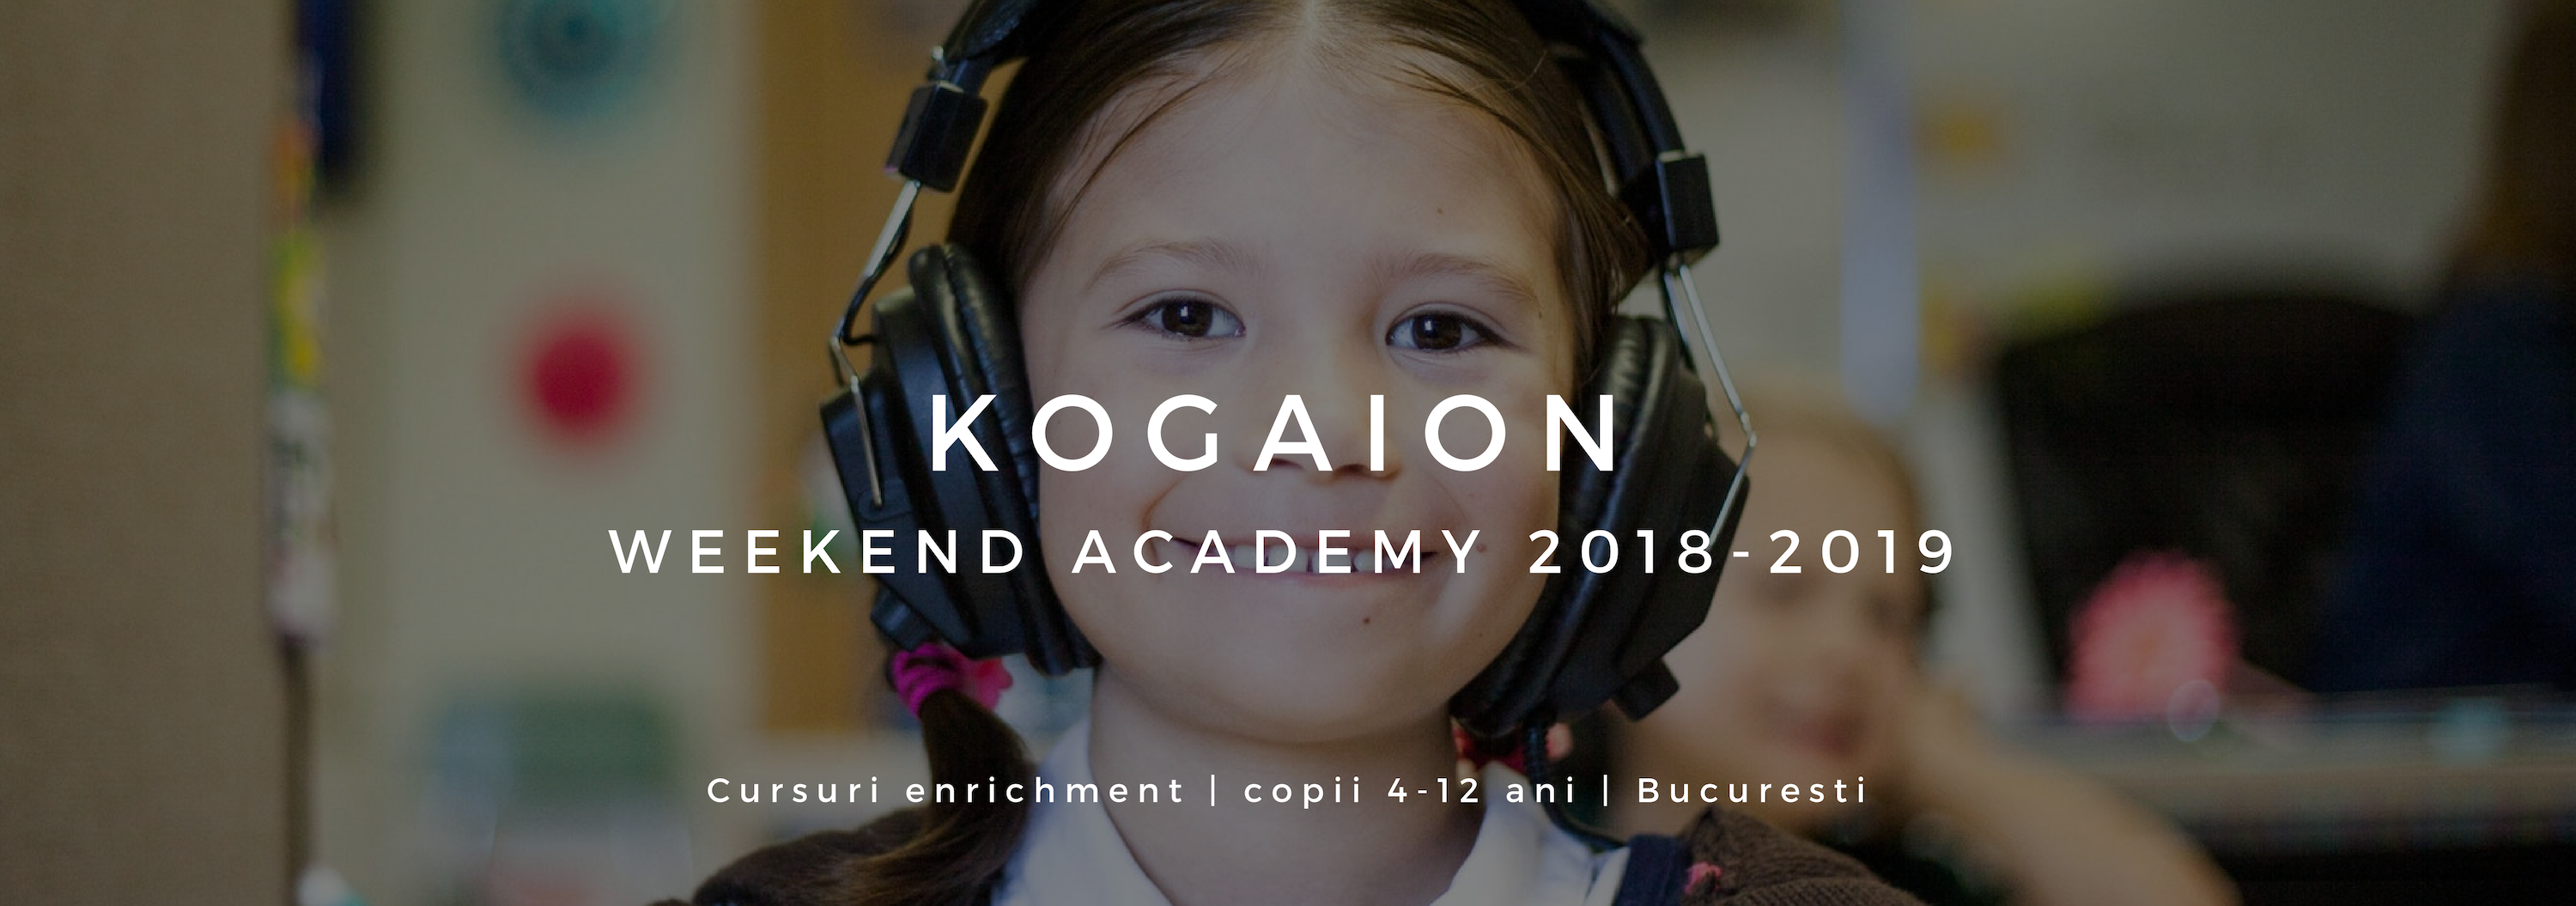 Kogaion Weekend Academy